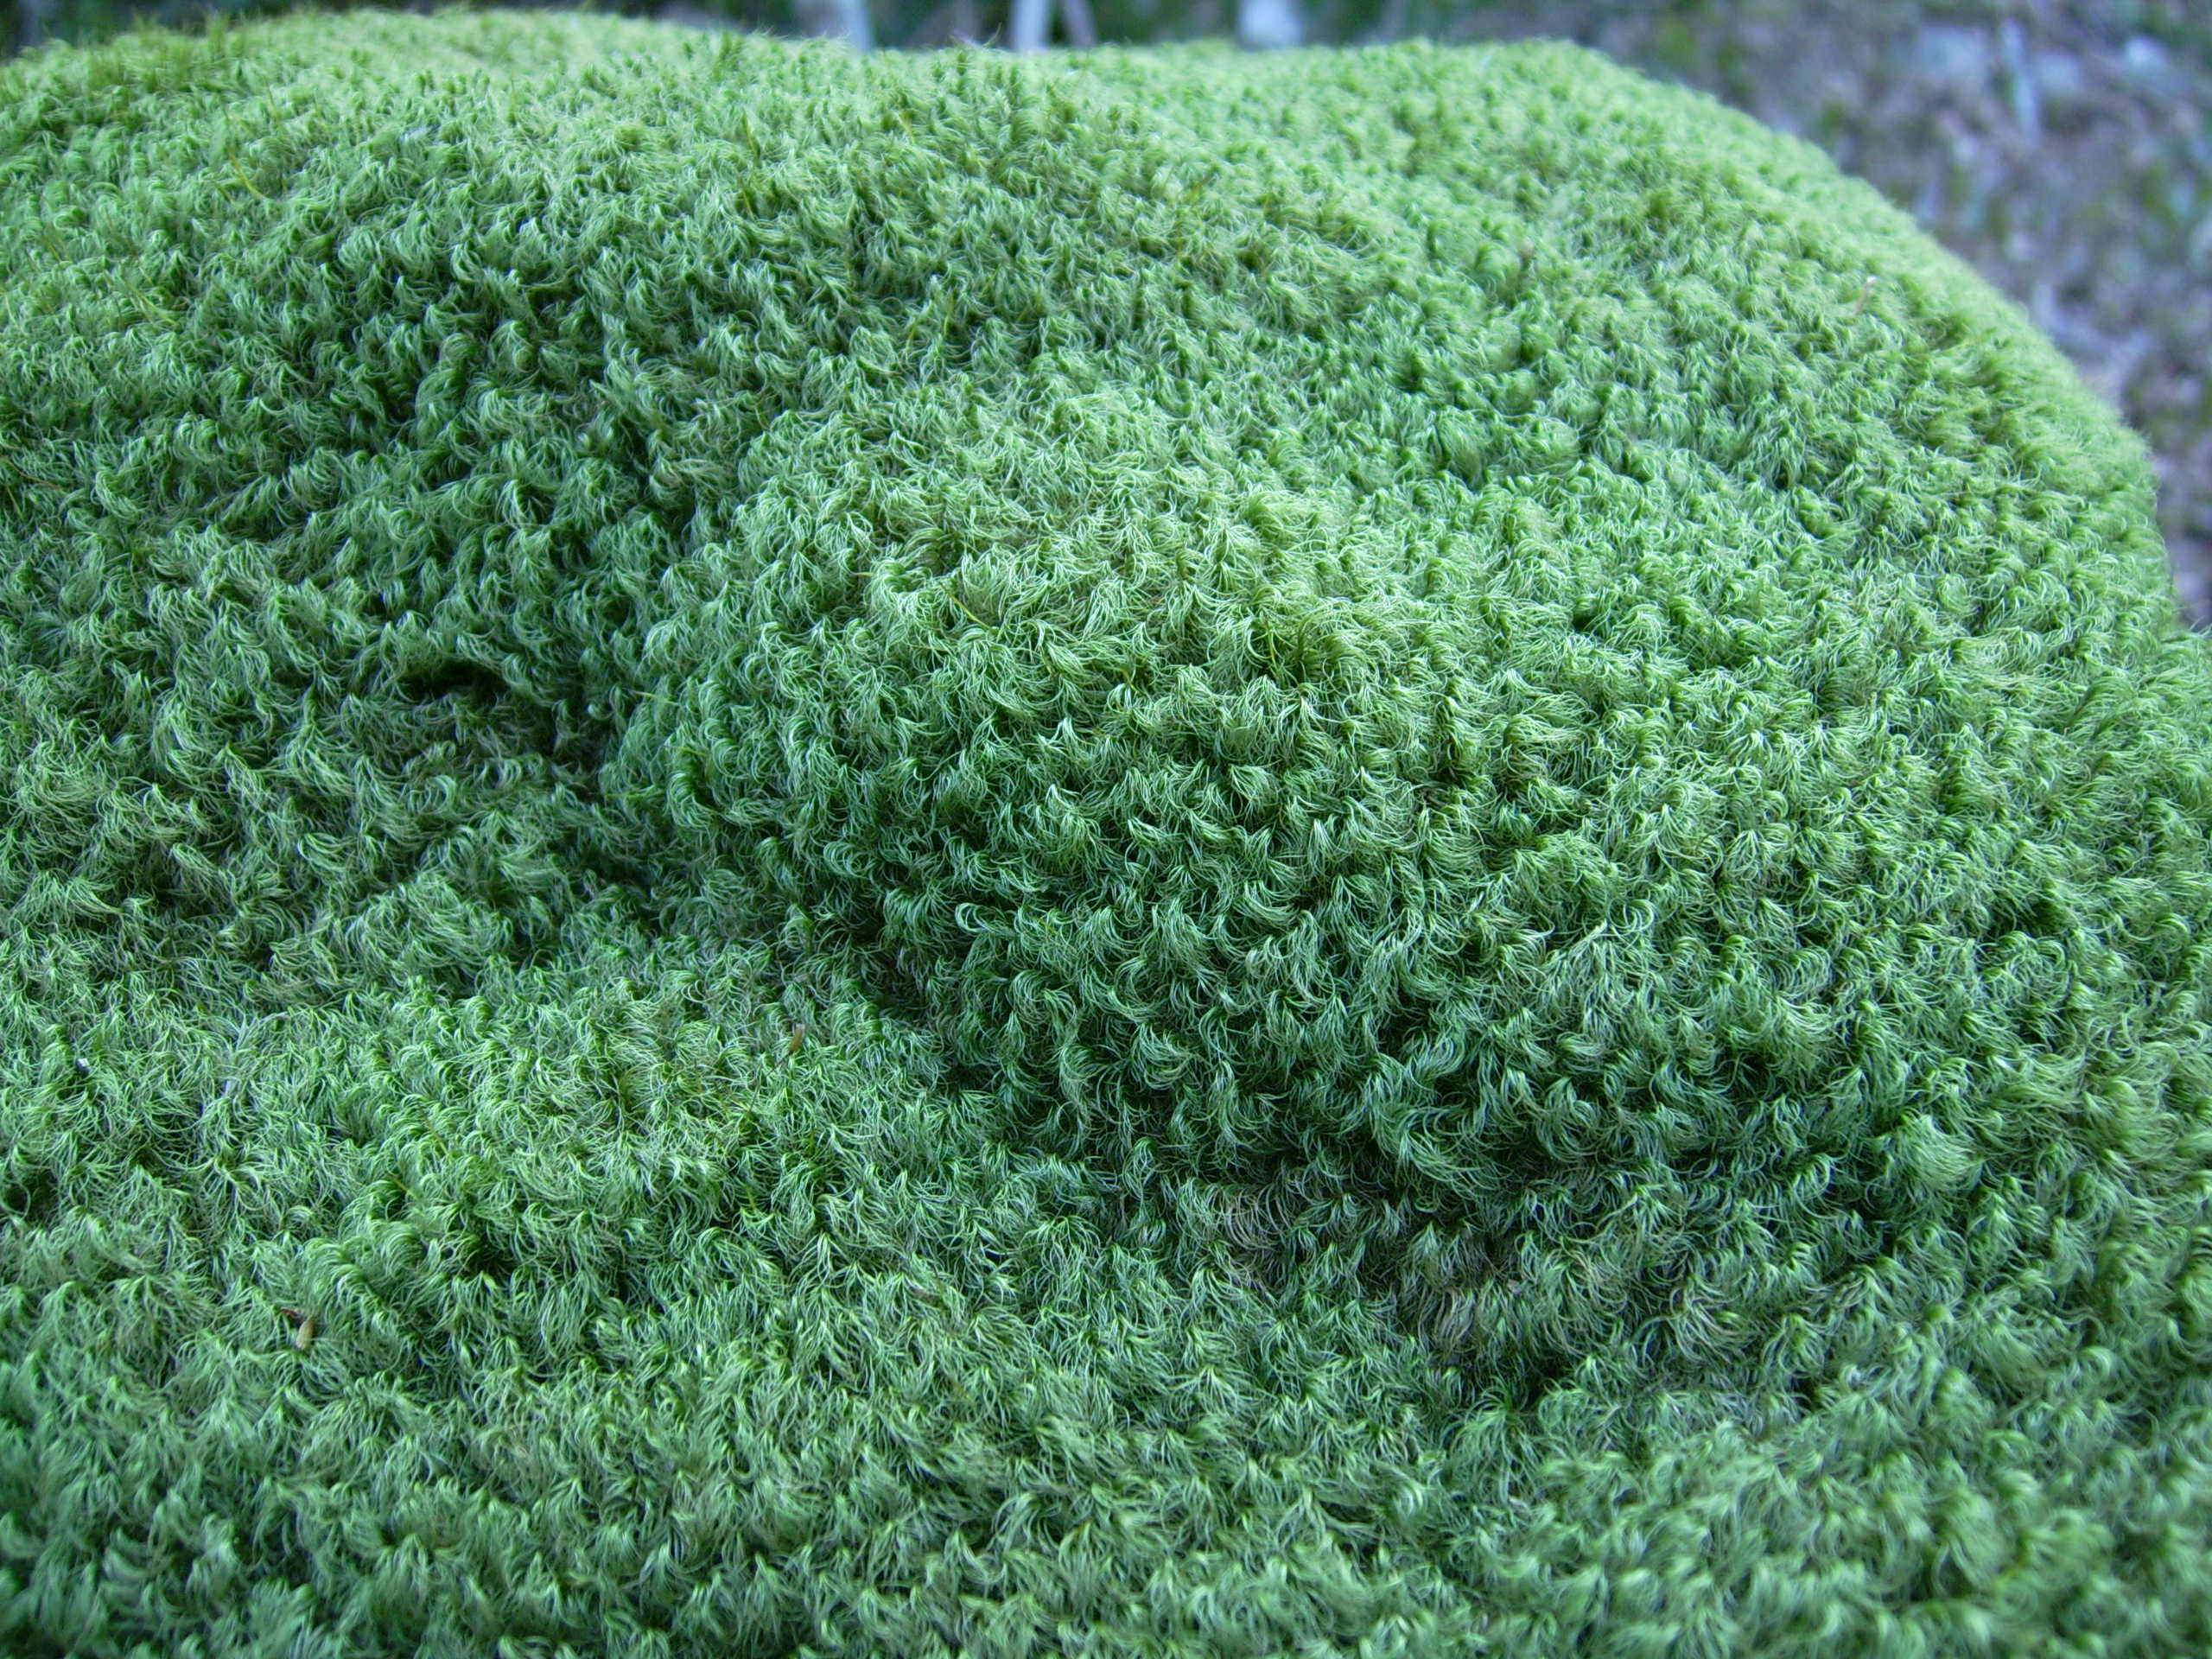 File:Broom moss (Orphan Lk) 2.JPG